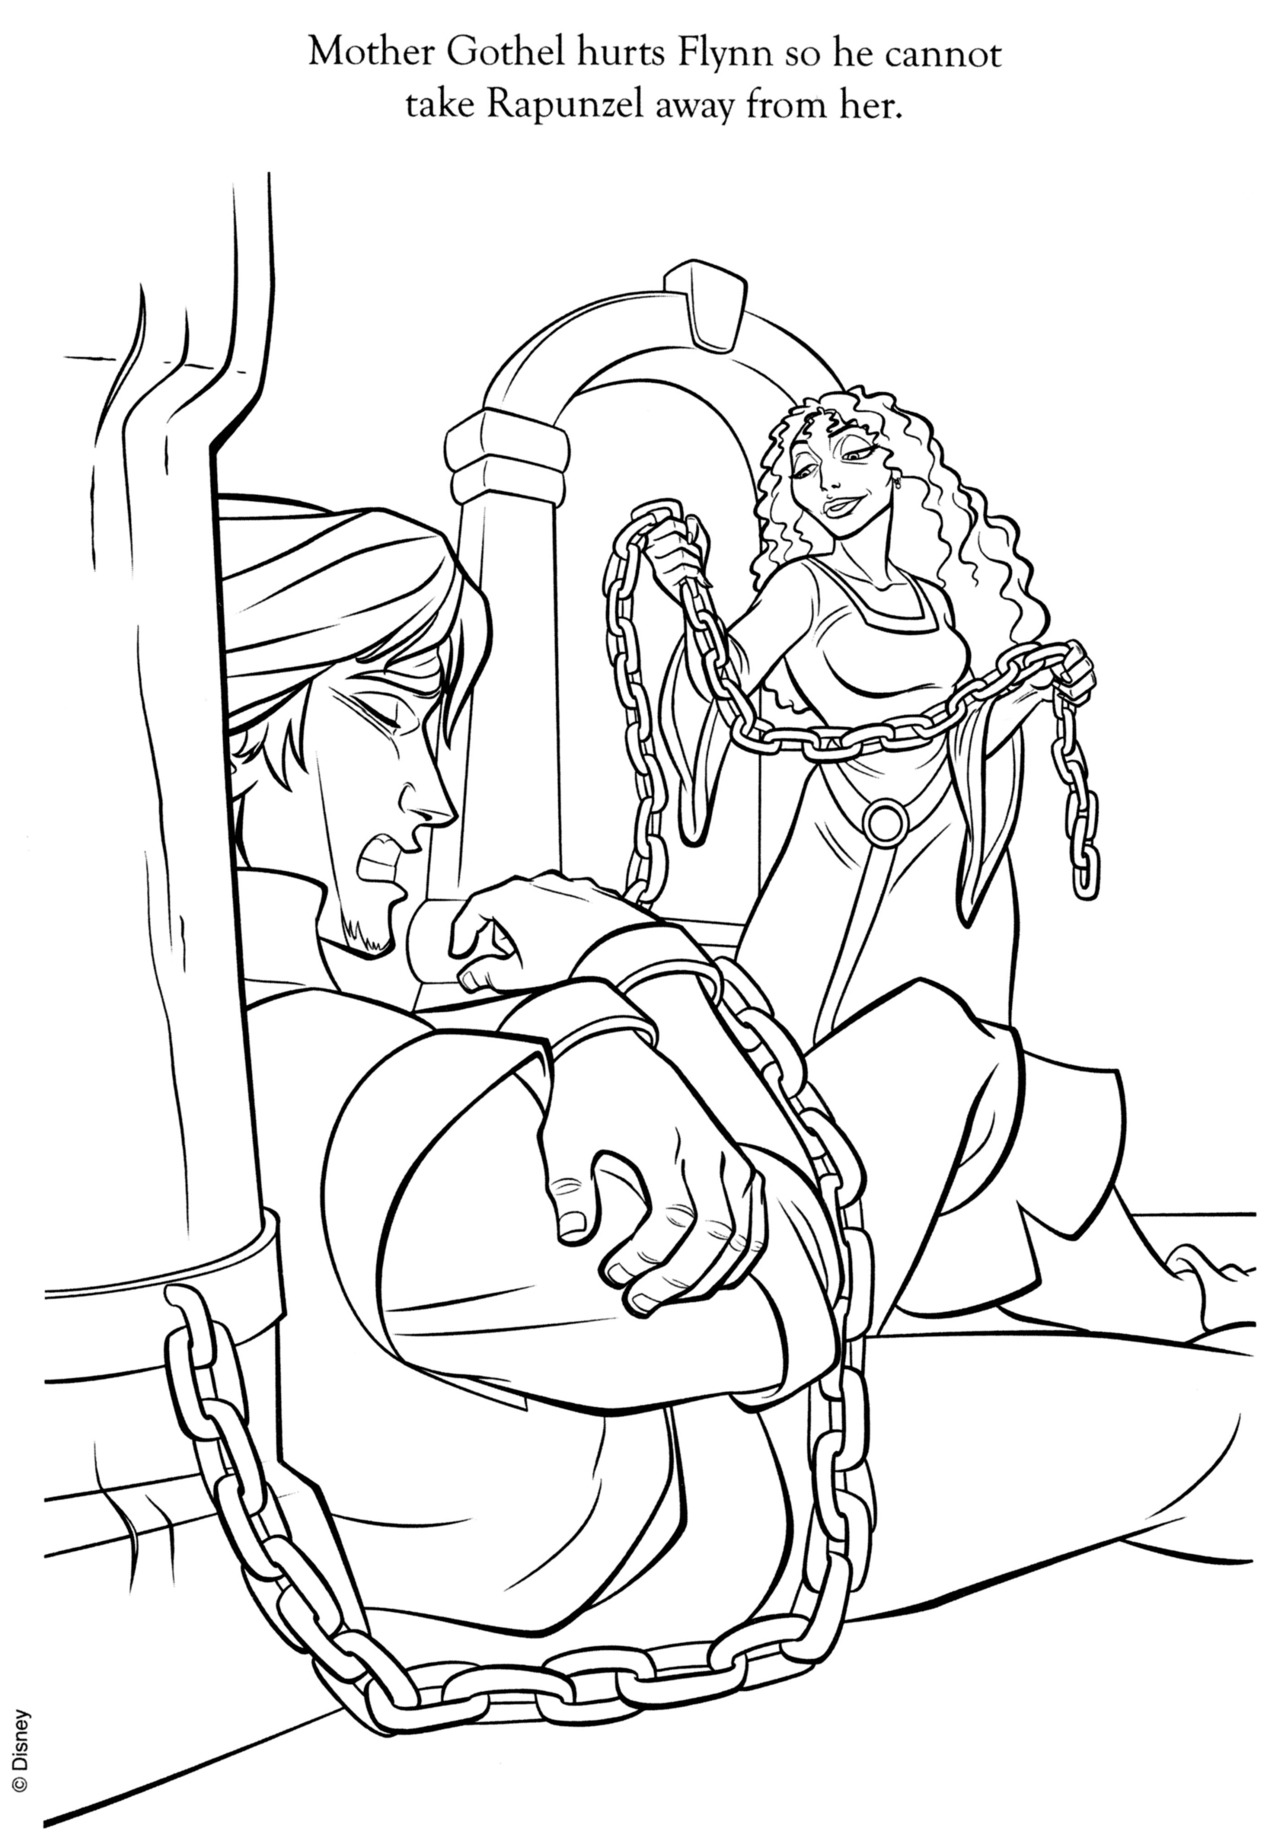 The Art Of Tangled Mother Gothel Hurts Flynn So He